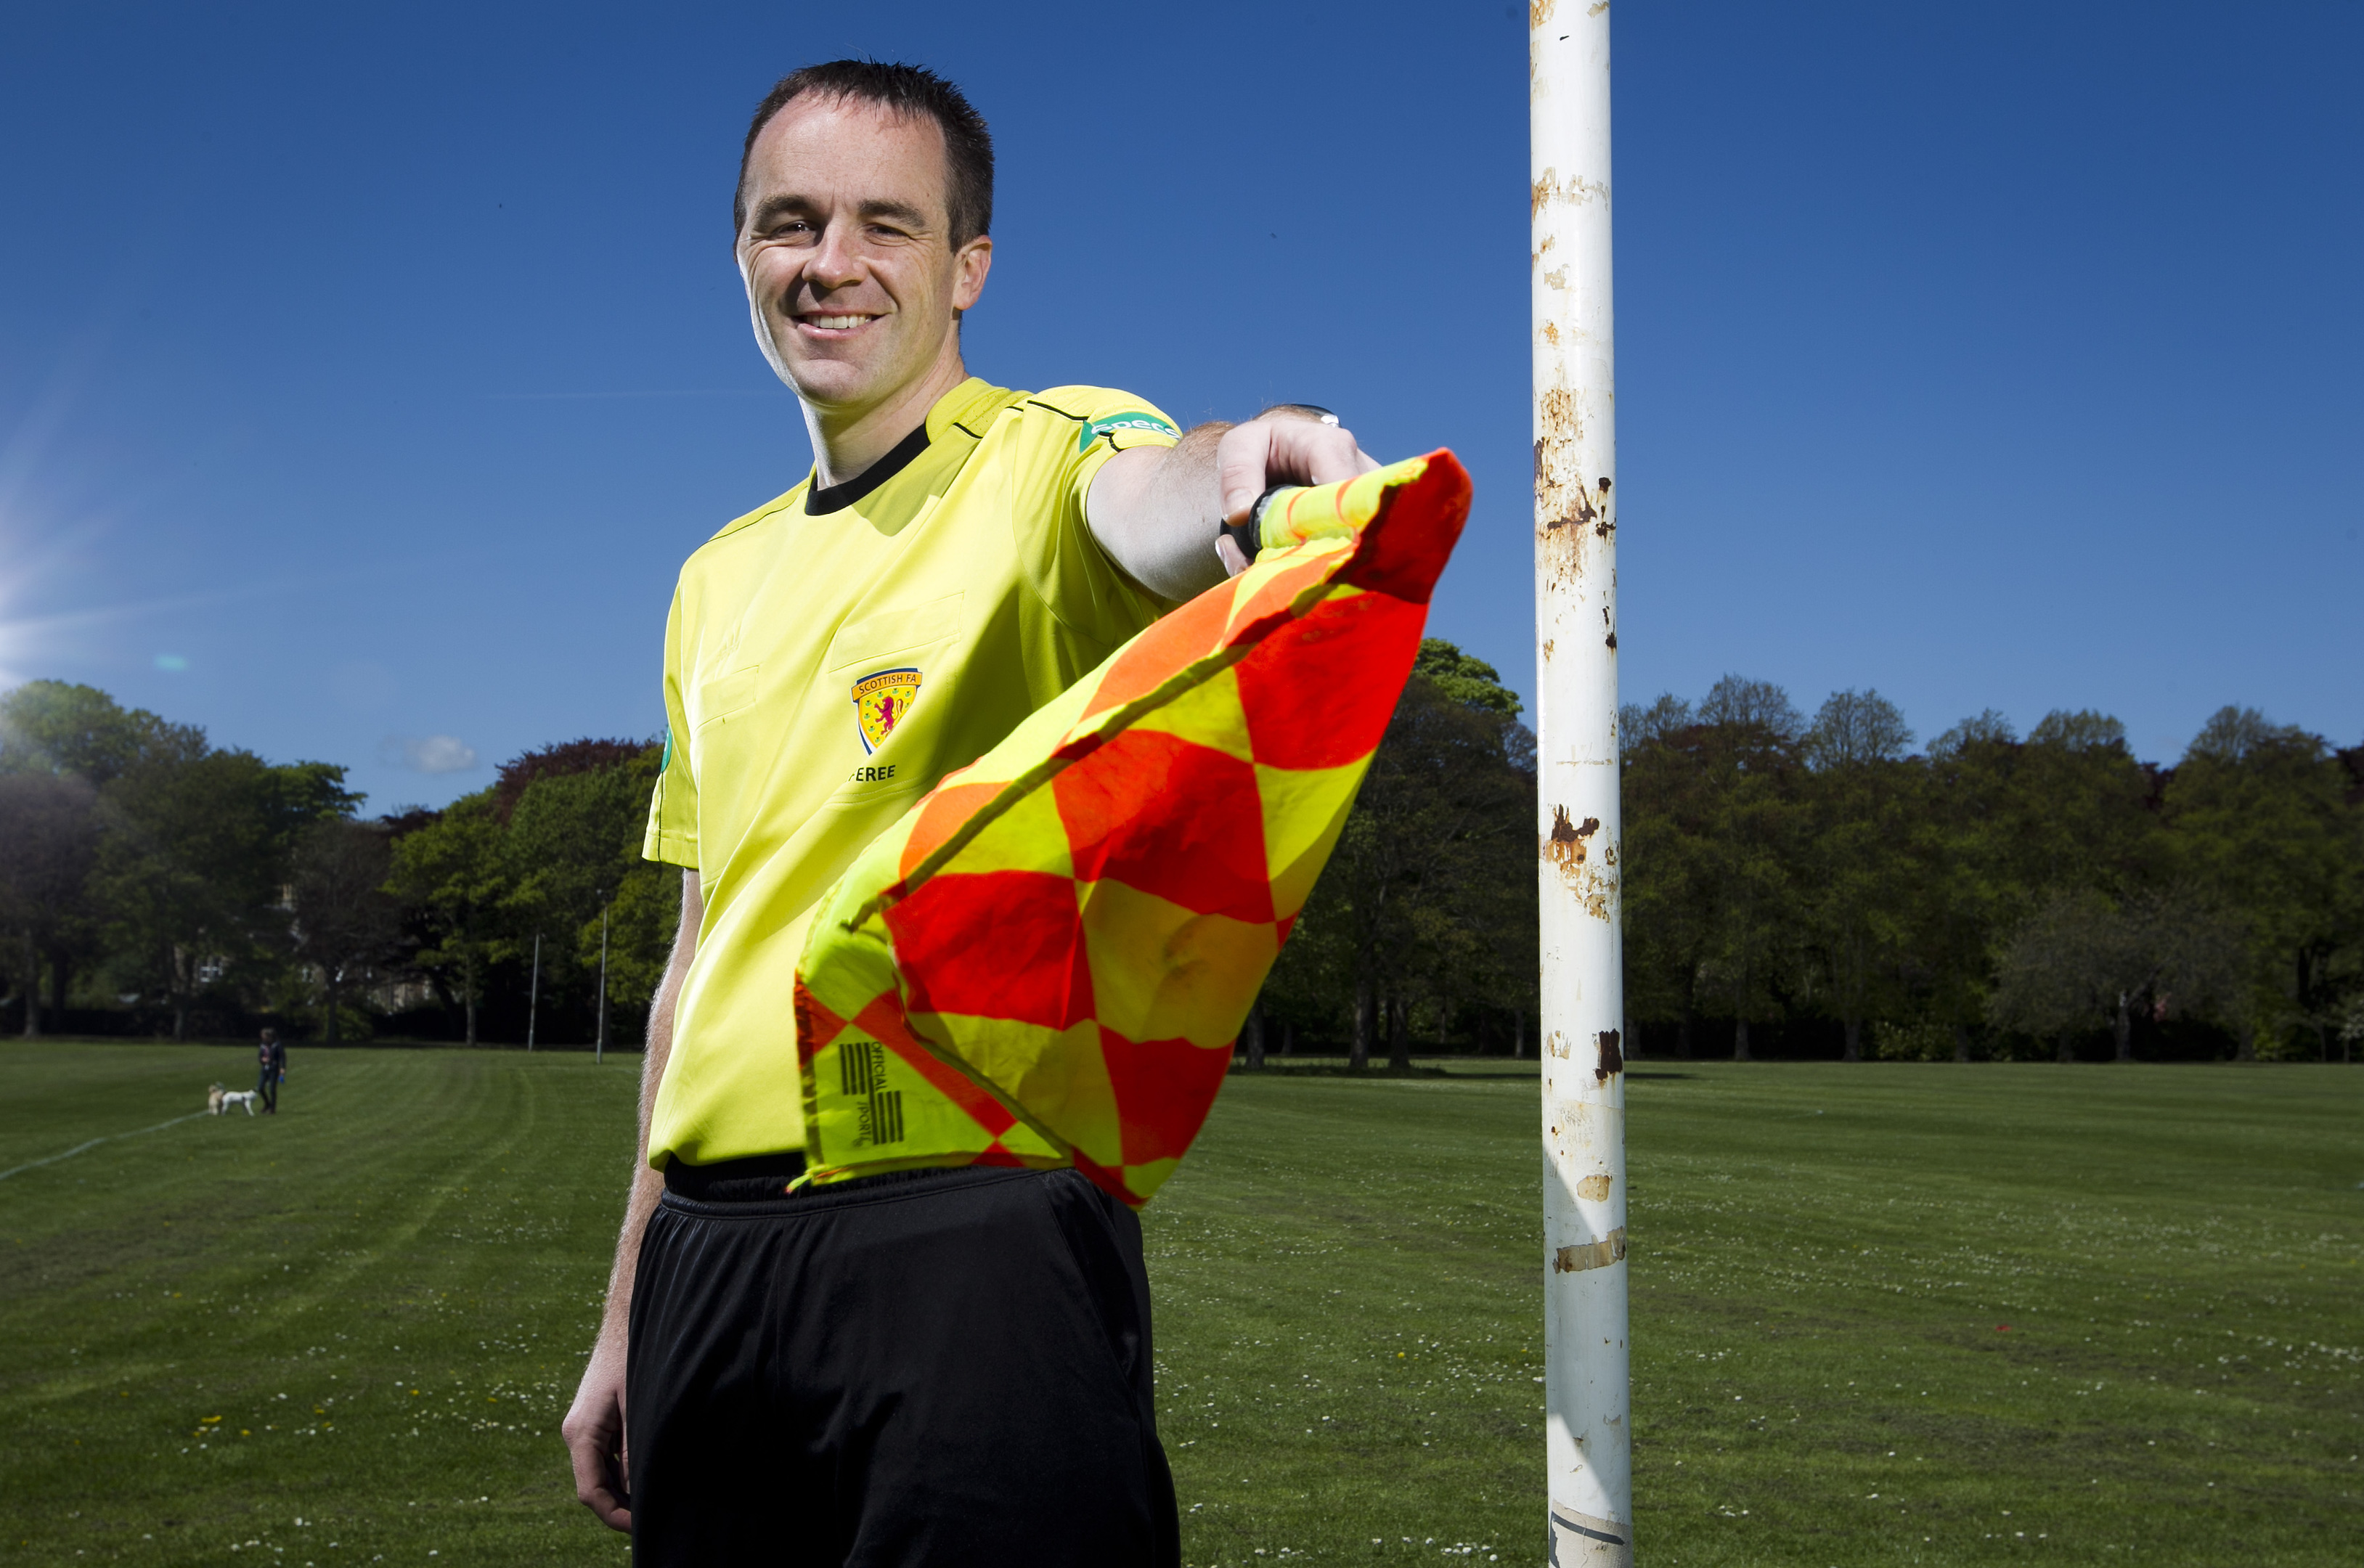 Dougie Potter combines his 30 games a year with his job as a policeman (Andrew Cawley / DC Thomson)